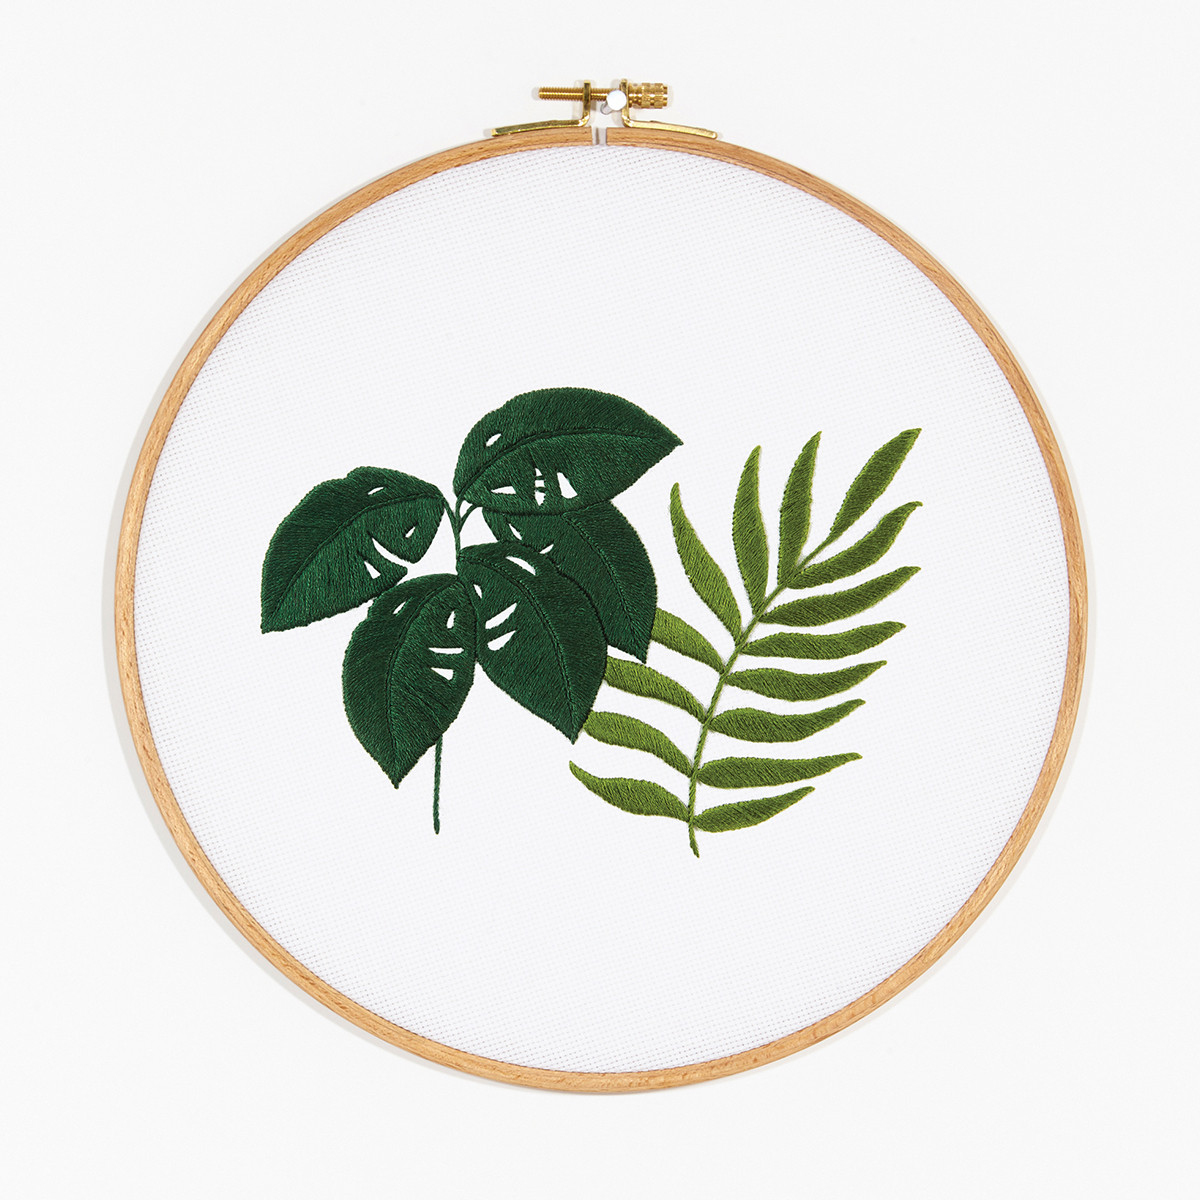 7 inch embroidery hoop showing montsera and fern embroidery design